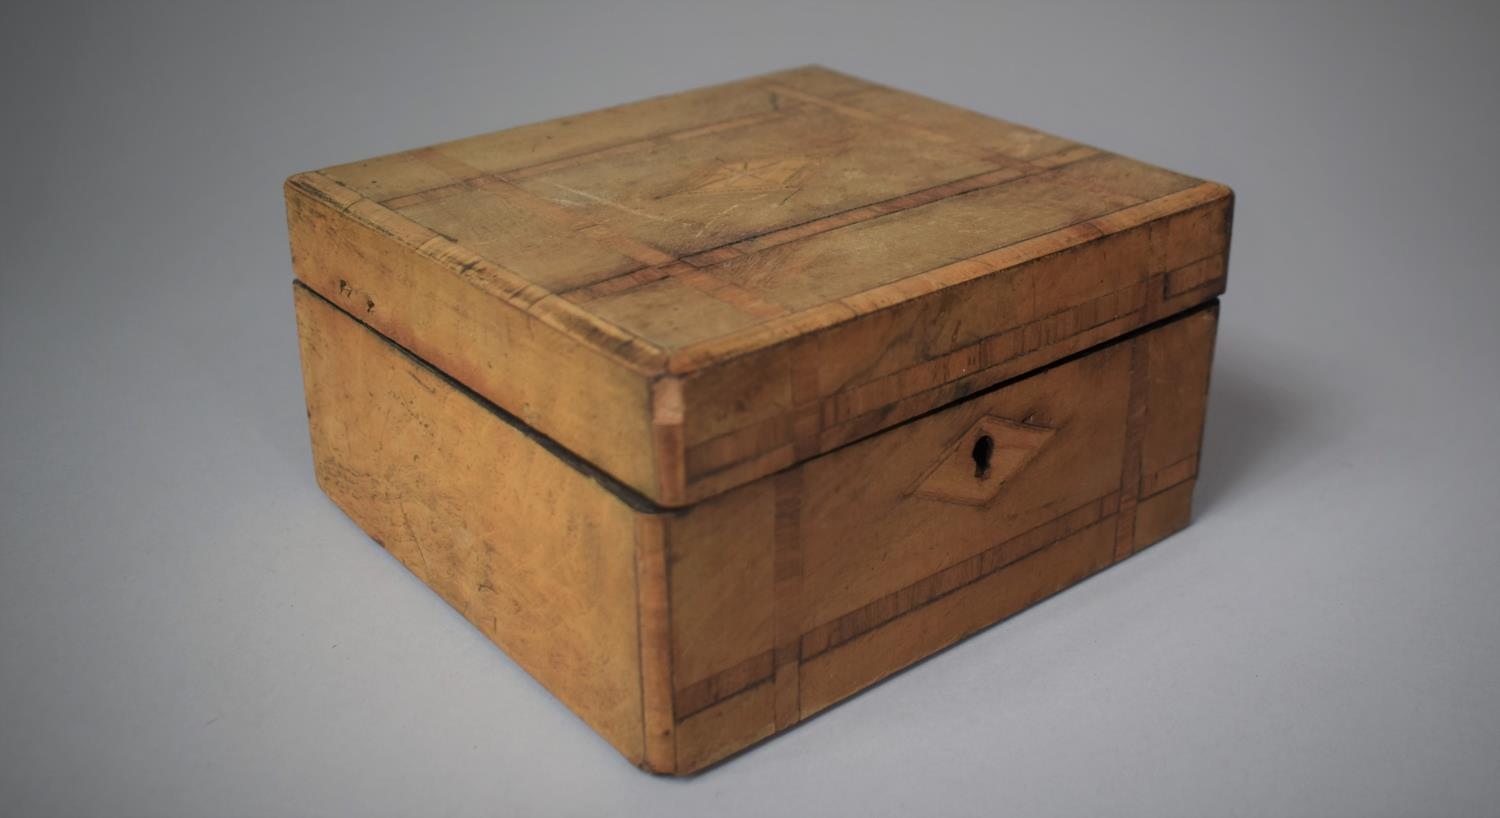 A Late 19th Century Inlaid Jewellery Box, Somewhat Faded, 19.5cm Wide